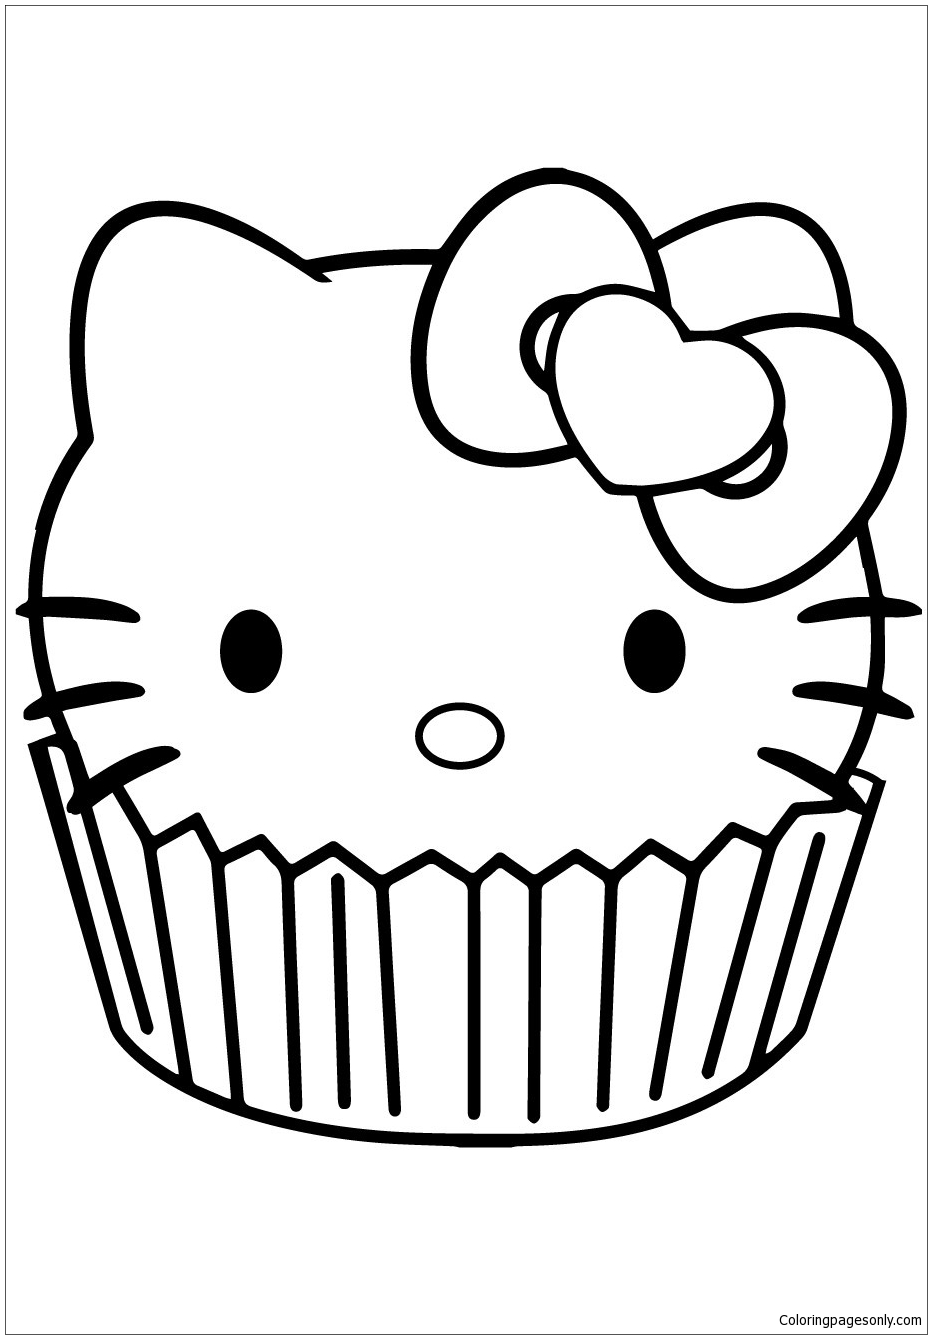 Online coloring pages hello kitty - Hello Kitty Cupcake Coloring Page